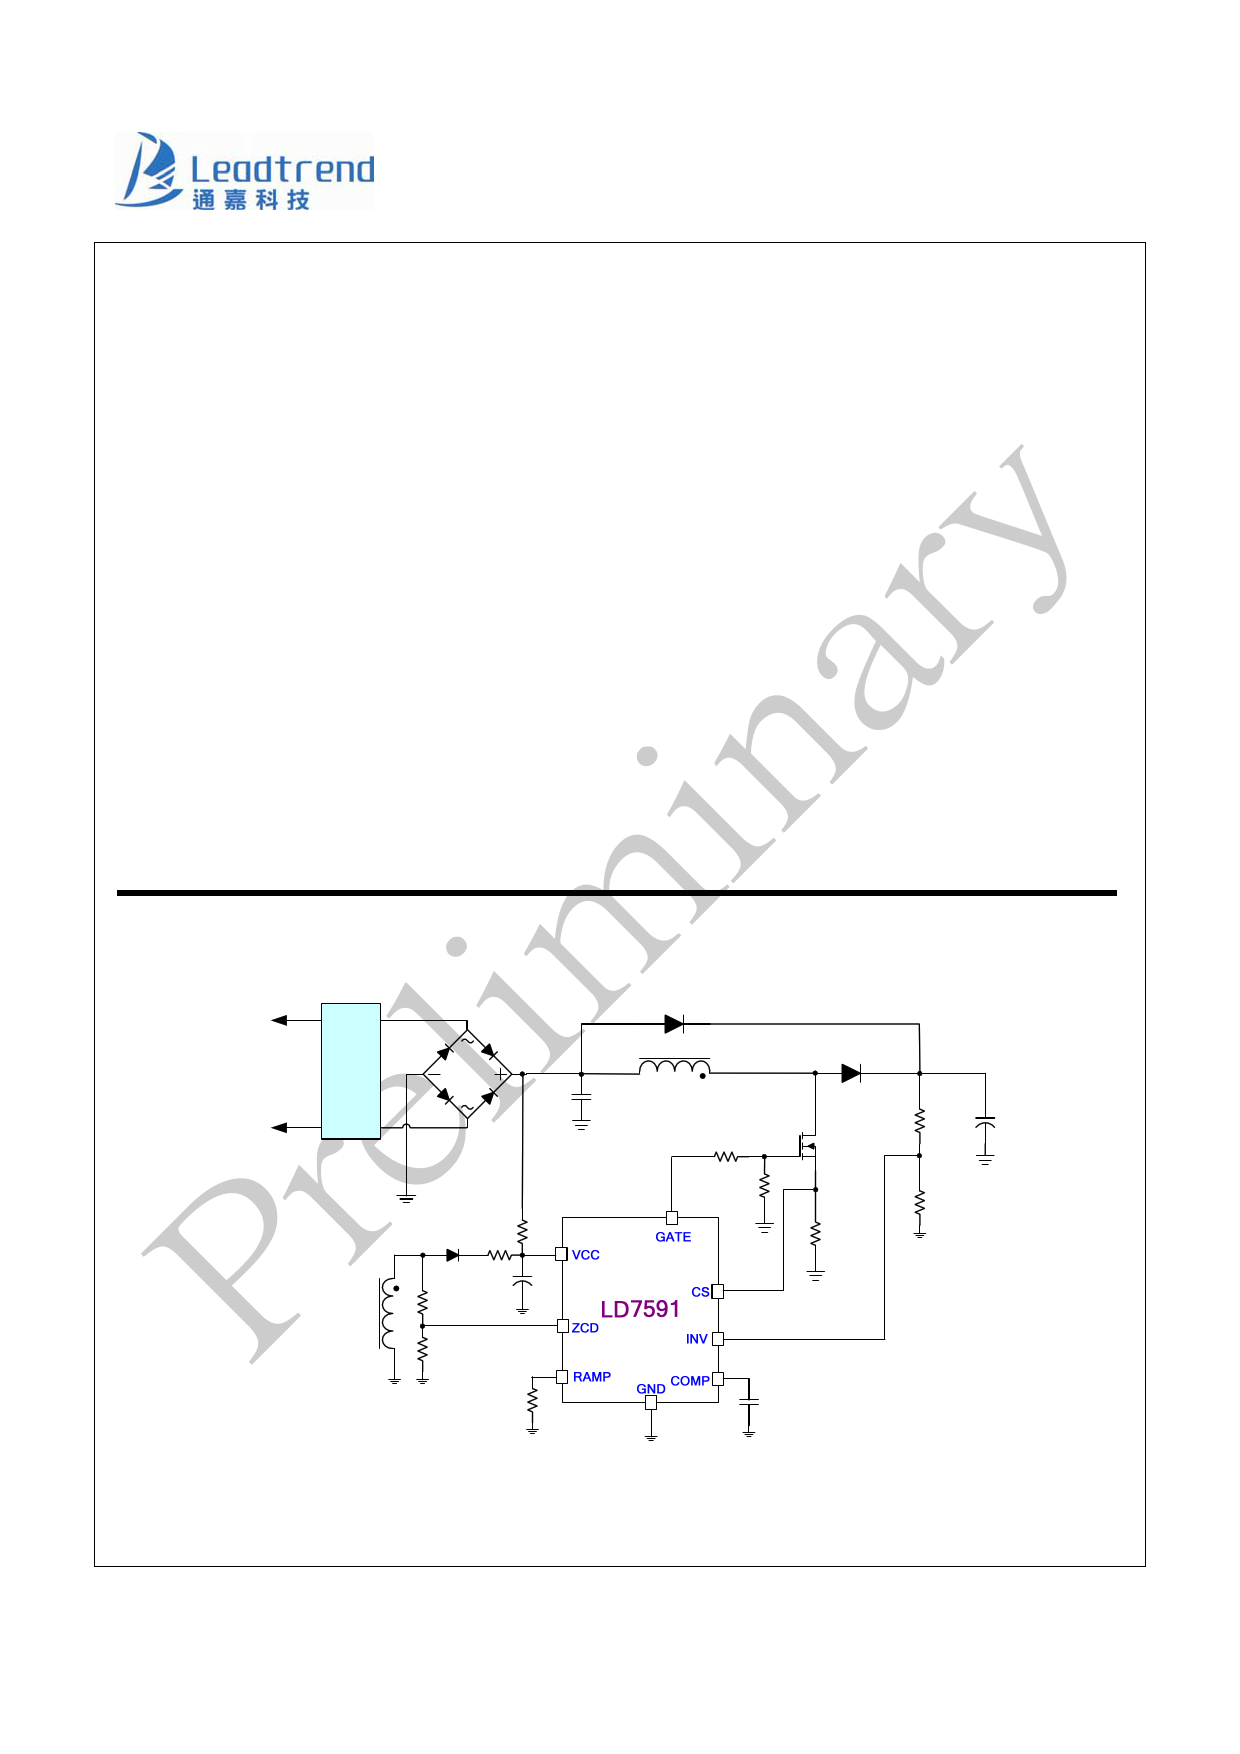 Ld18a datasheet pdf no preview available